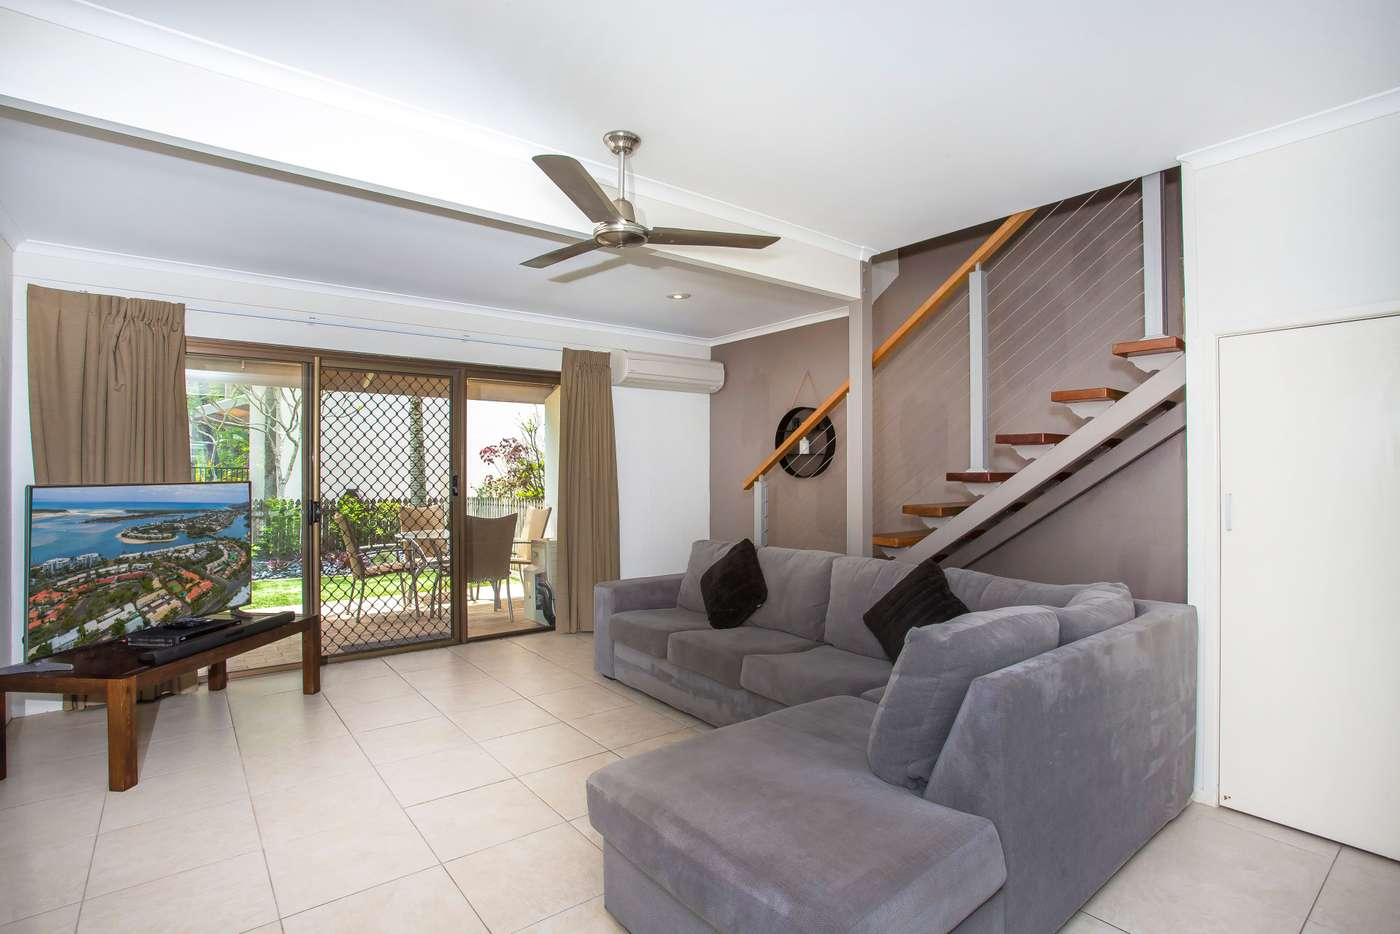 Main view of Homely apartment listing, 11/130 Noosa Parade, Noosaville QLD 4566